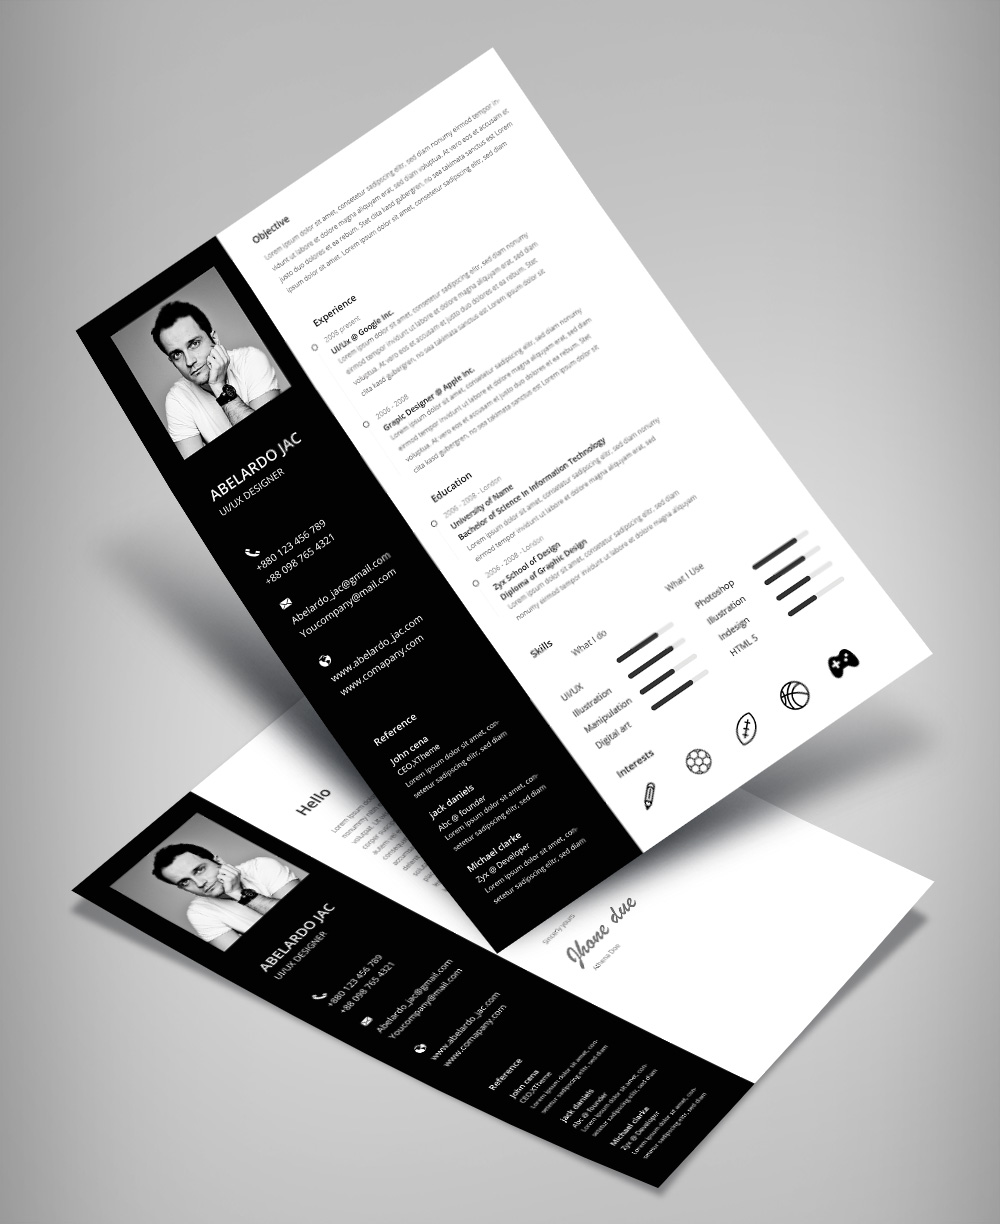 Classy Black Amp White Resume CV Template With Cover Letter Free PSD File Good Resume